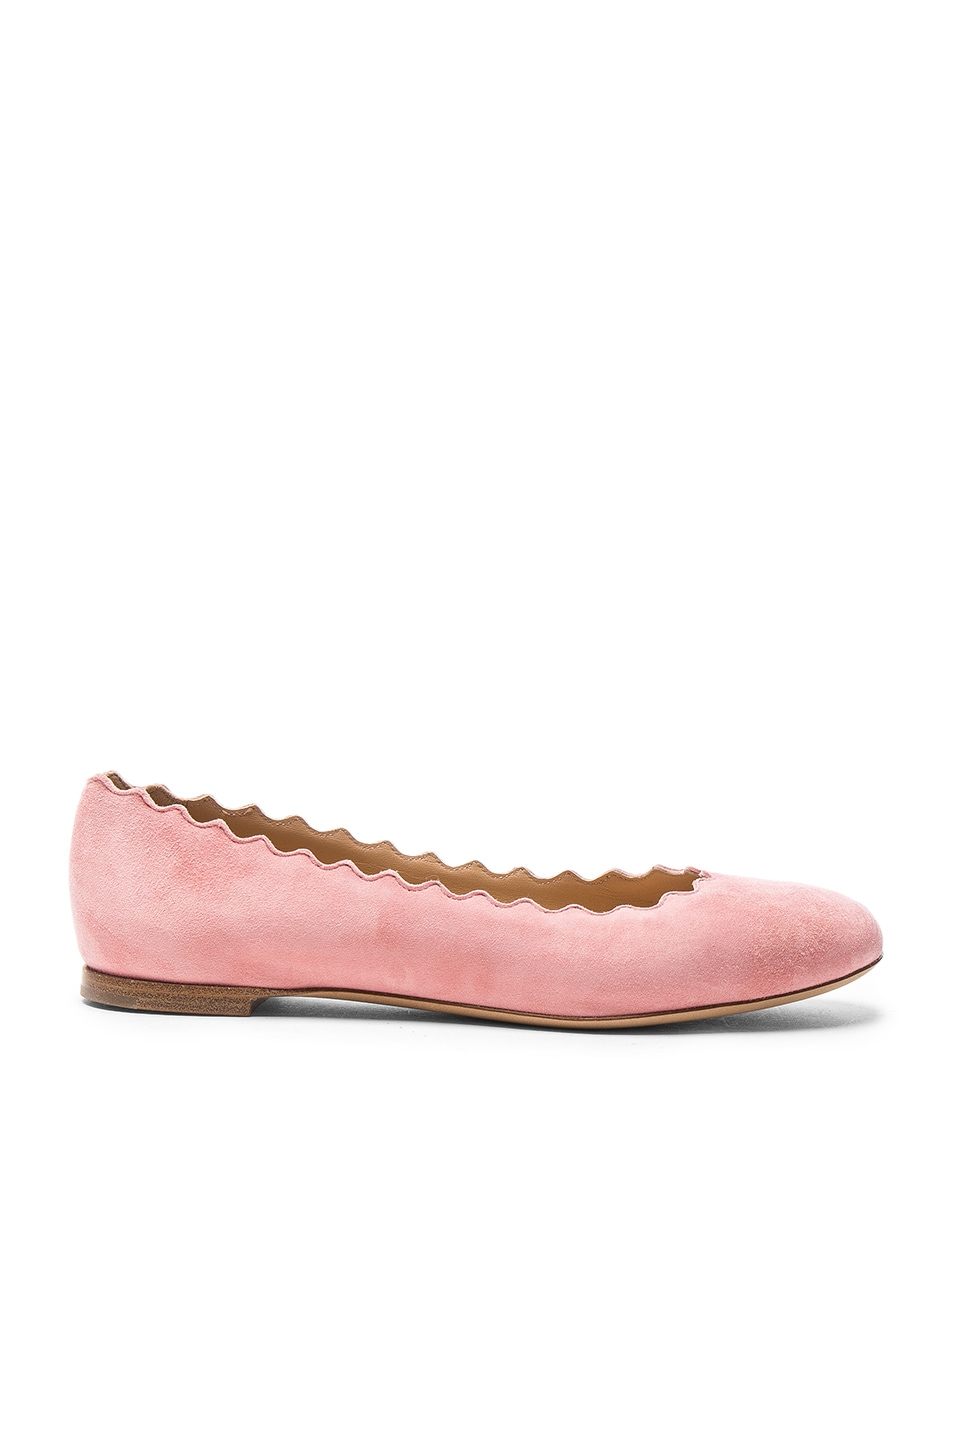 Image 1 of Chloe Suede Lauren Flats in Pink Grey